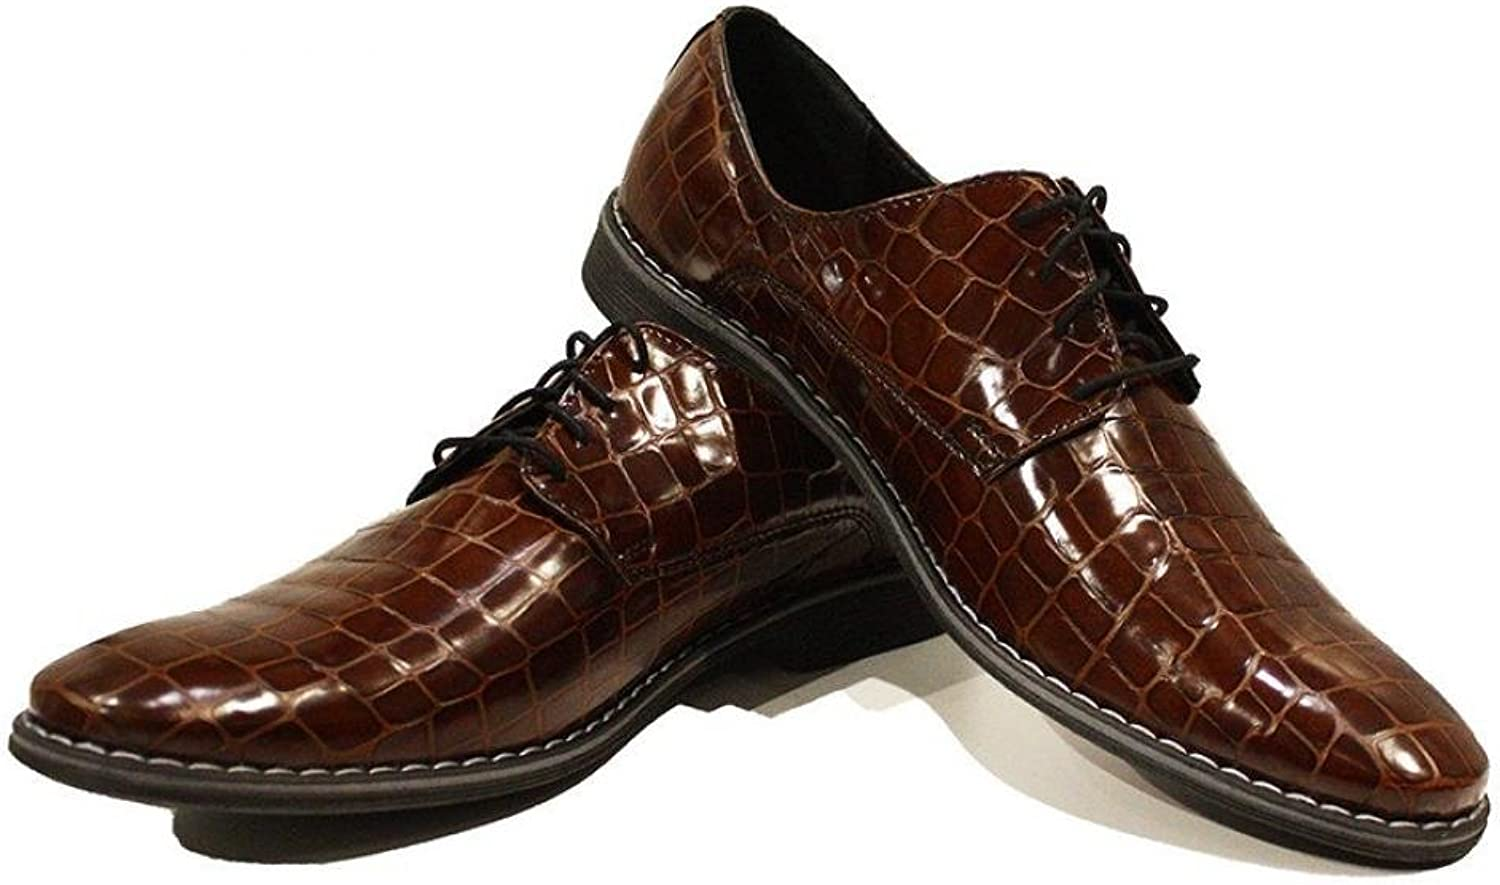 Modello Gozo - Handmade Italian Leather Mens color Brown Oxfords Dress shoes - Cowhide Embossed Leather - Lace-Up